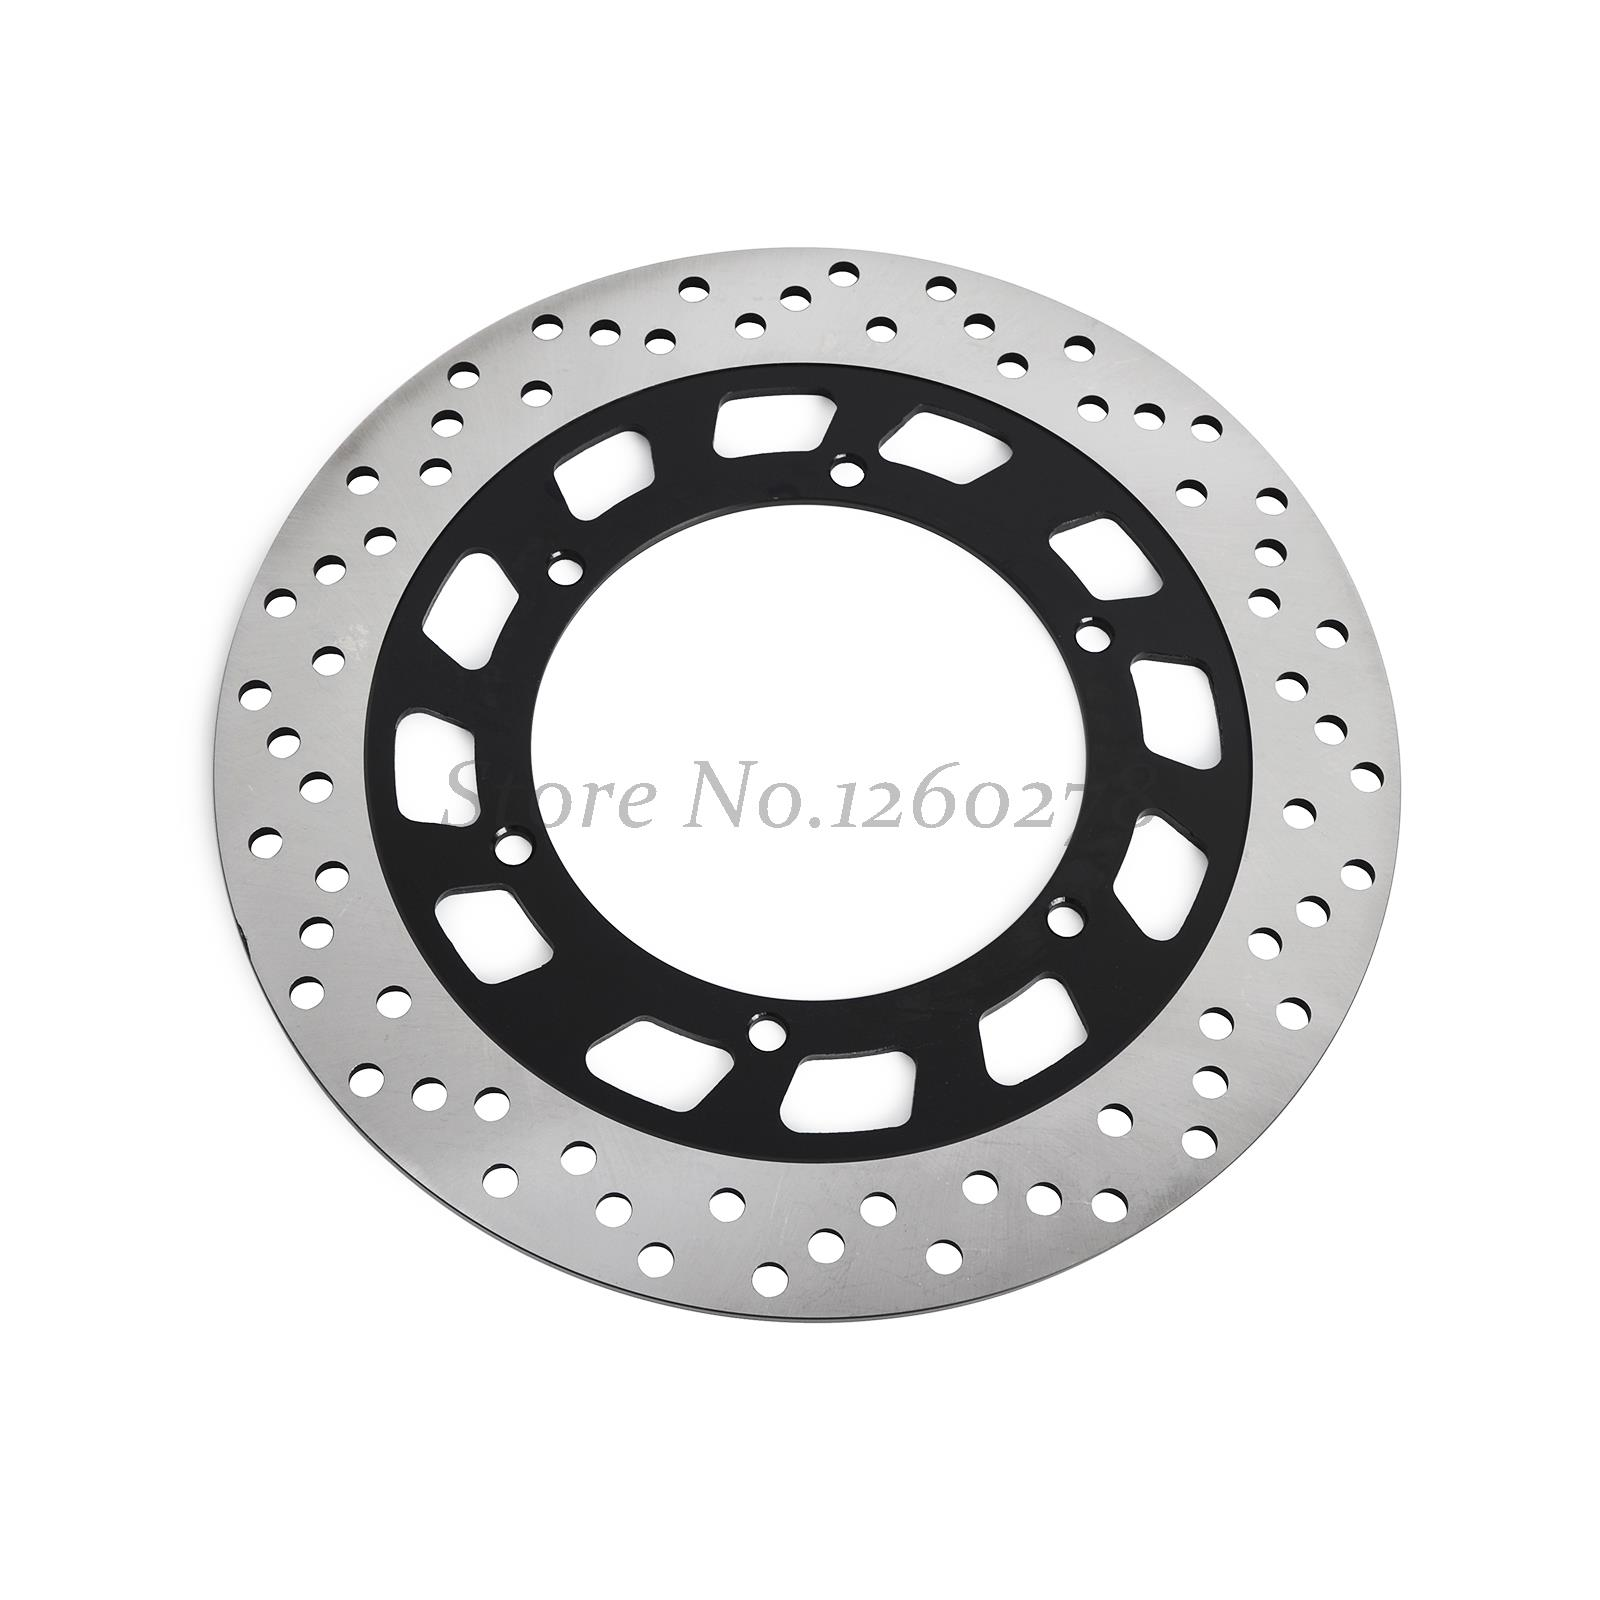 Motorcycle Rear Brake Disc Rotor For Yamaha GTS1000 FJ1000 XVS1100 FJ1200 V MAX 1200 FJR1300 ABS